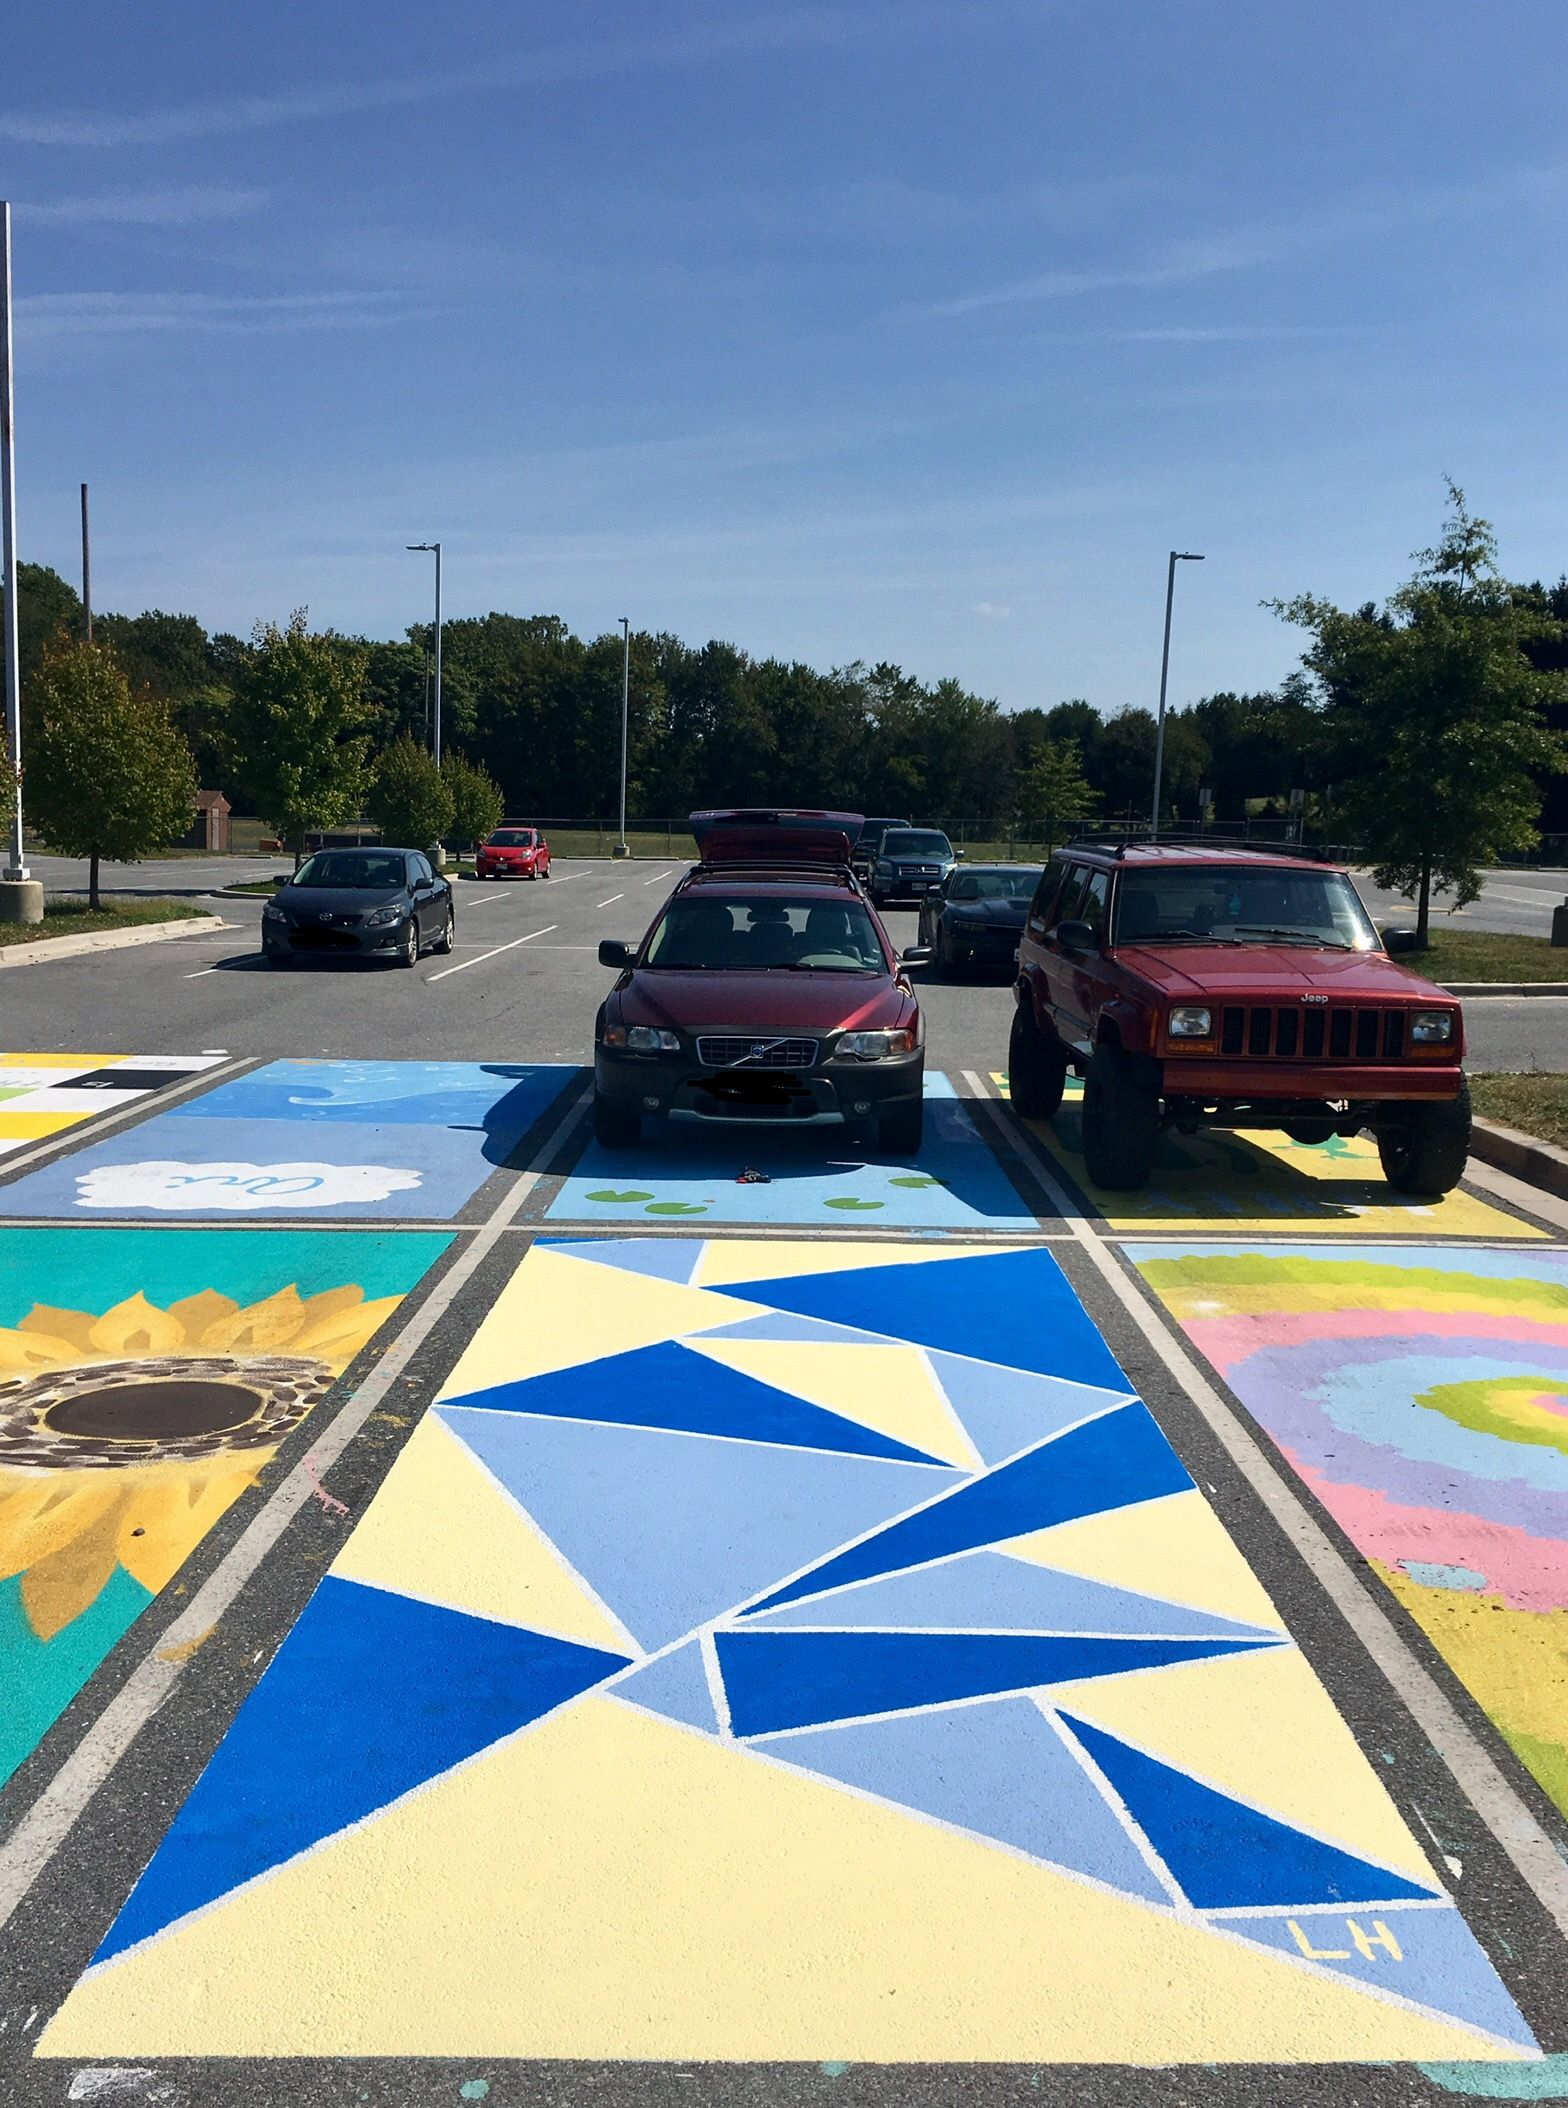 #senior #seniorparkingspot #parkingspot #paintedparkingspot #paint